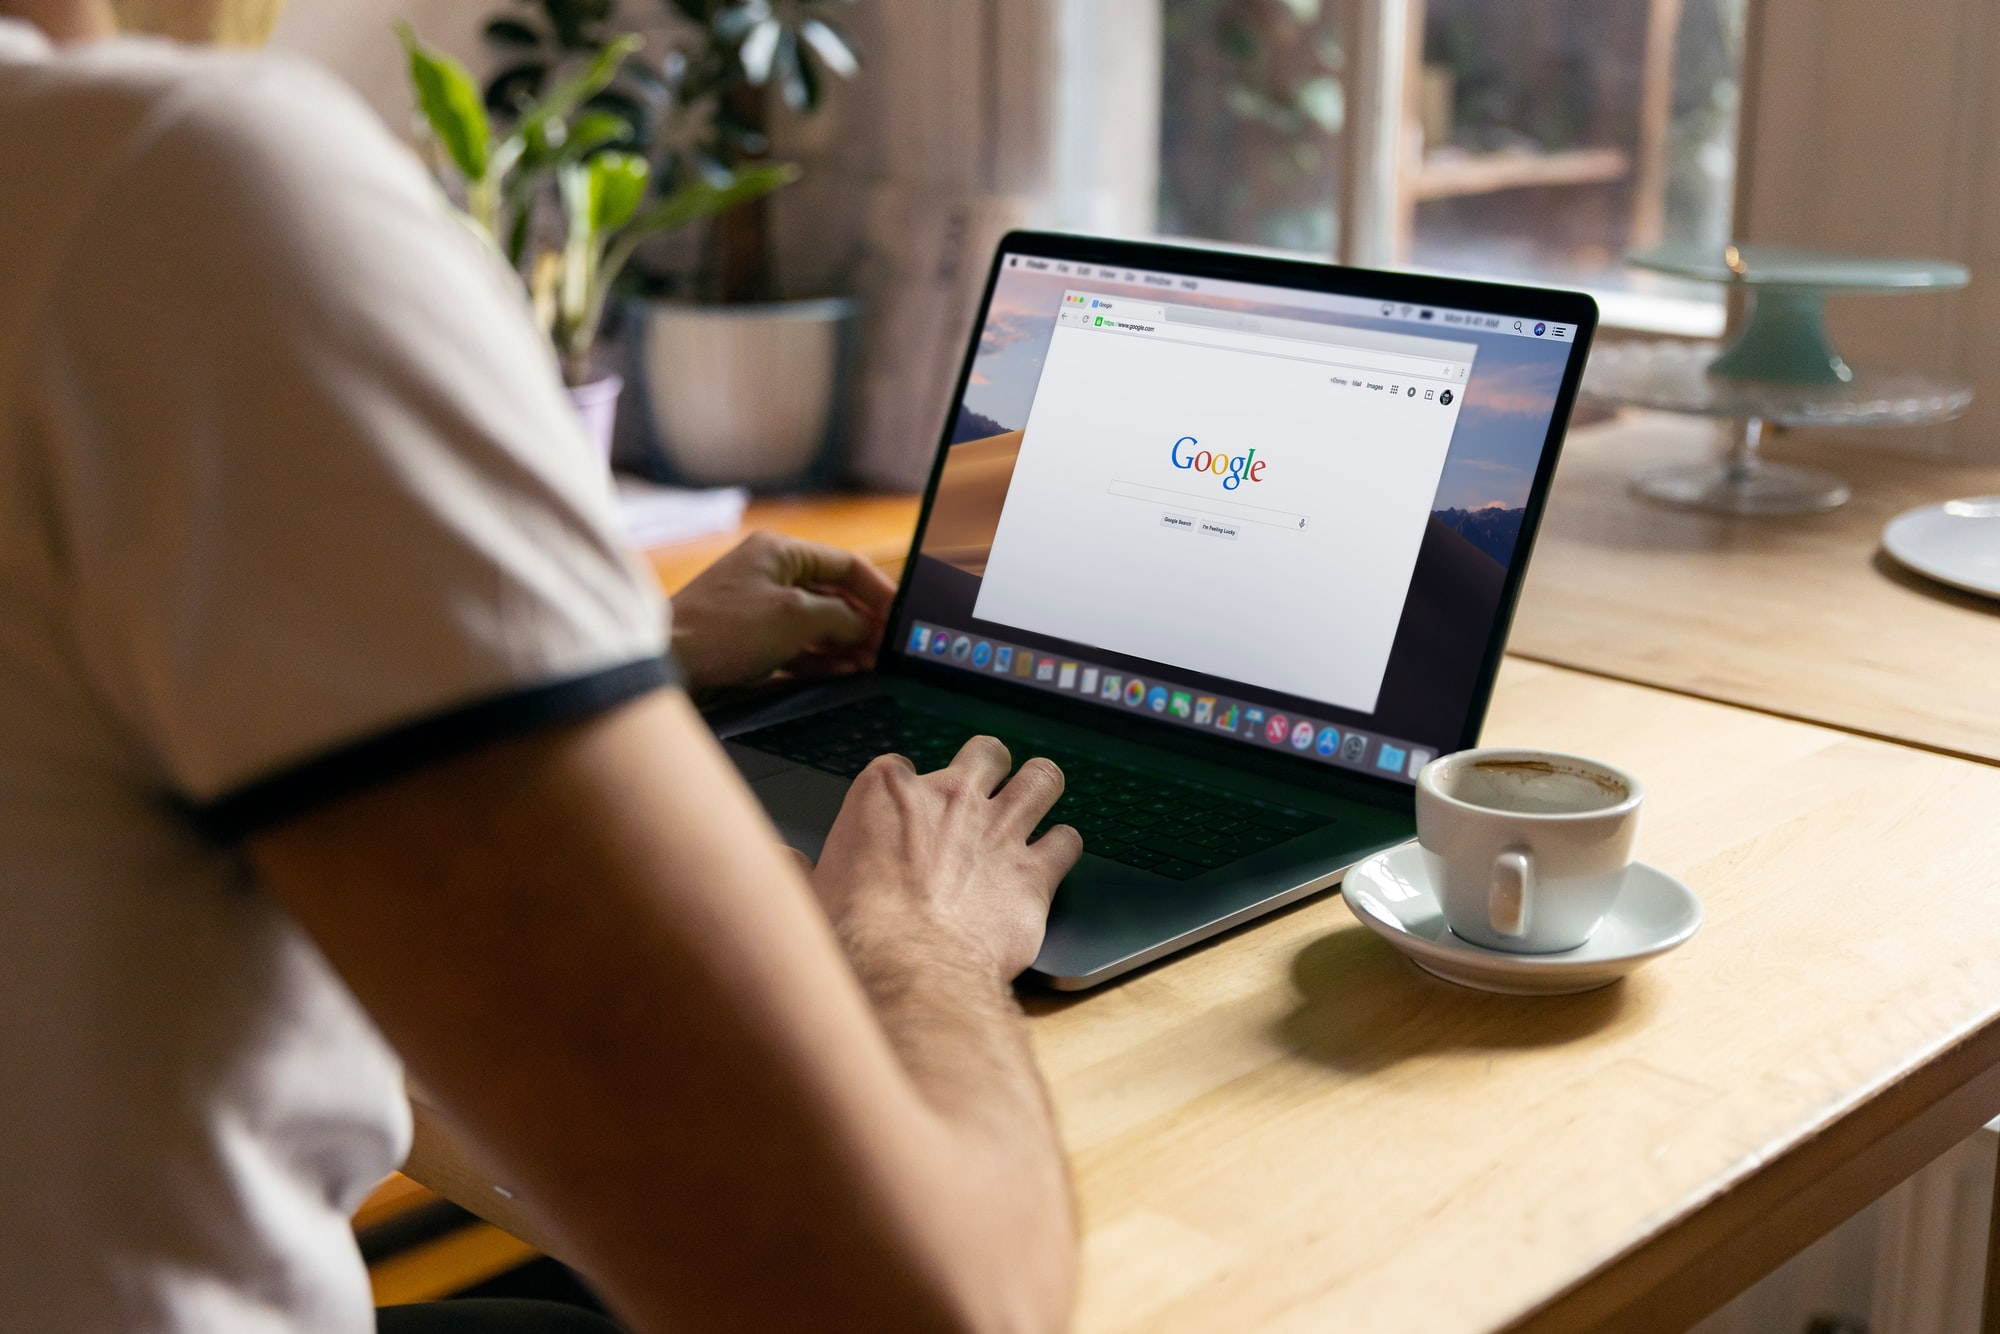 How to Unshare a Google Docs Once You've Shared It